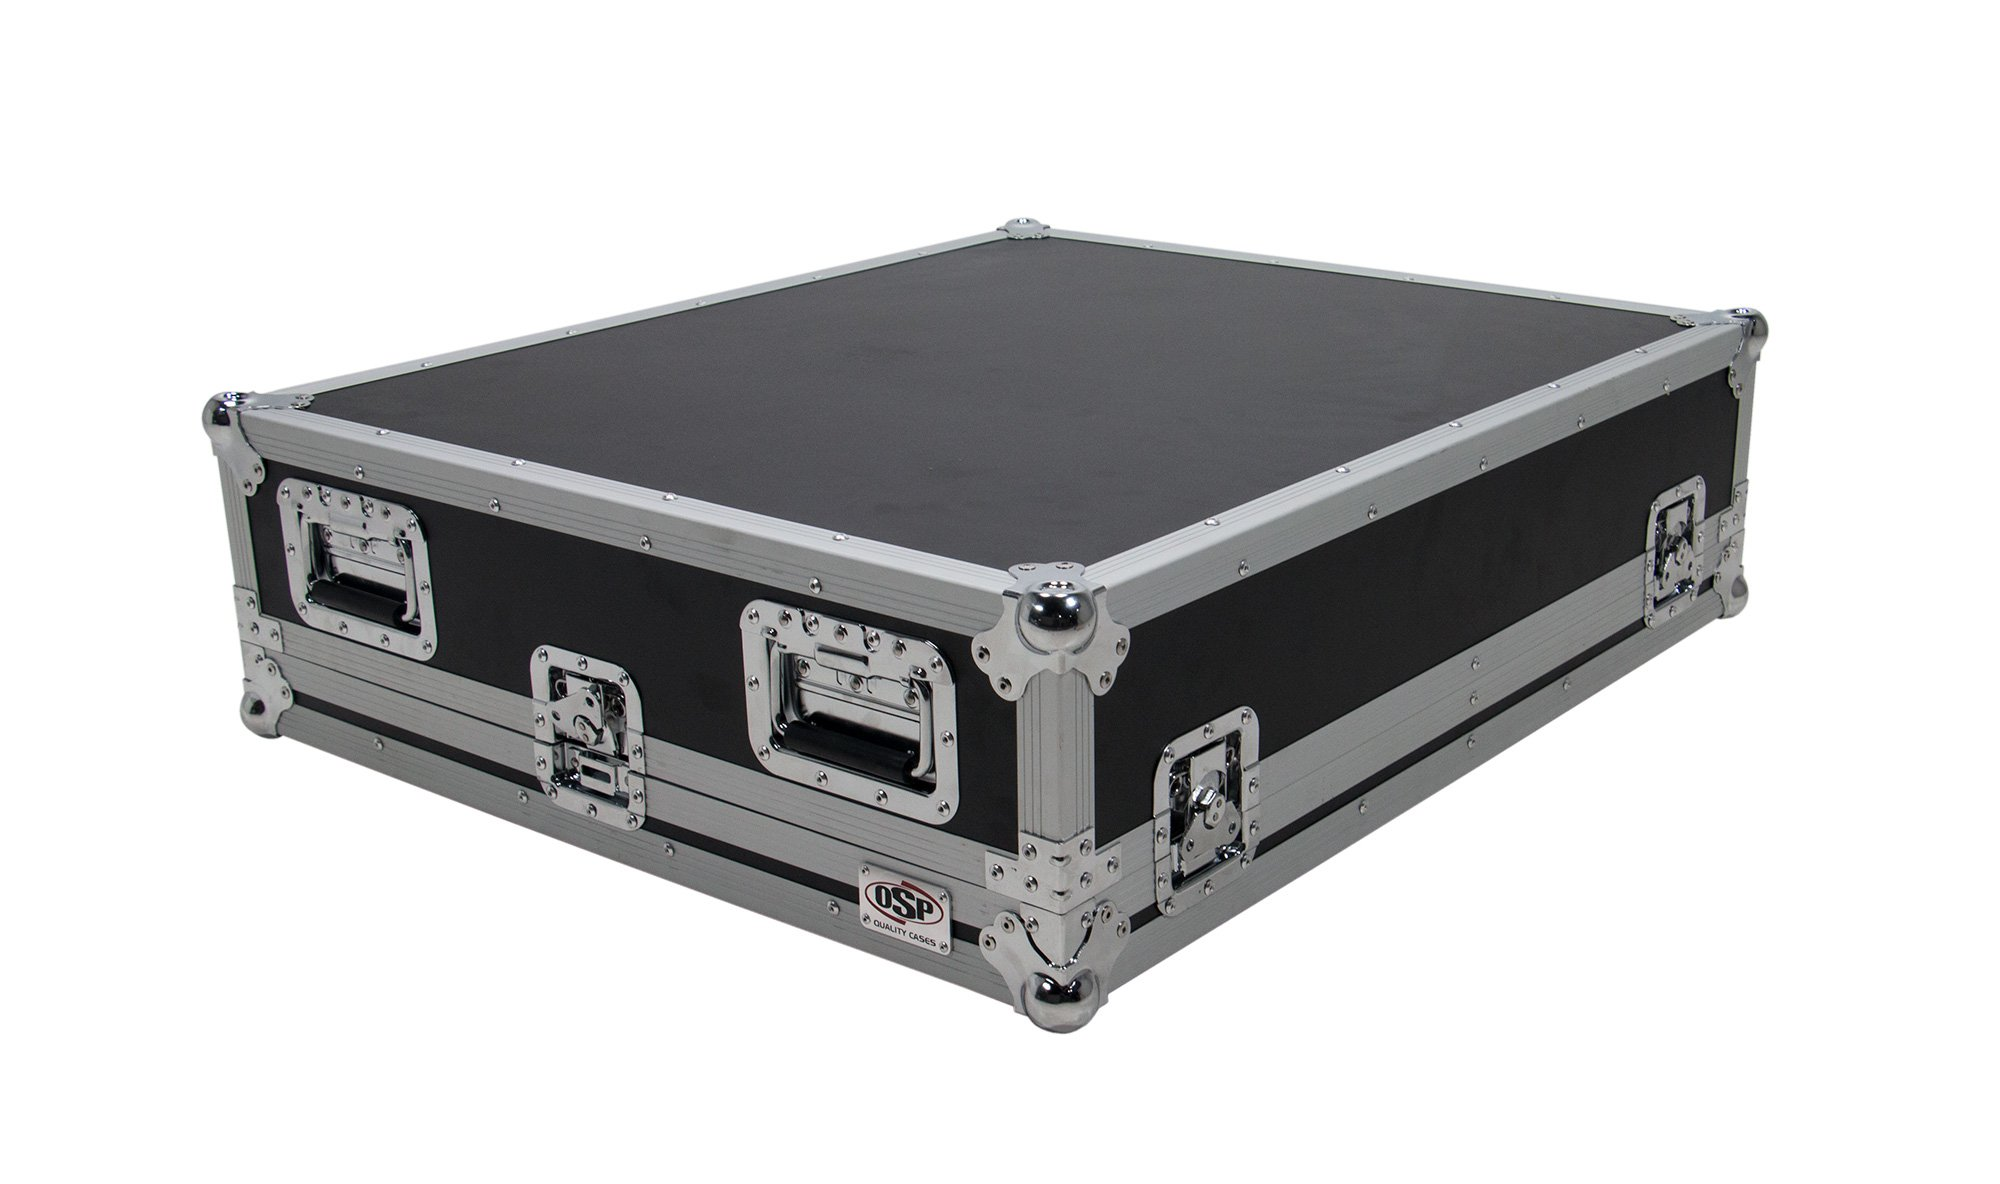 OSP Cases | ATA Road Case | Mixer Case for Presonus Series III StudioLive 32 Digital Mixer | ATA-STUDIOLIVE-32